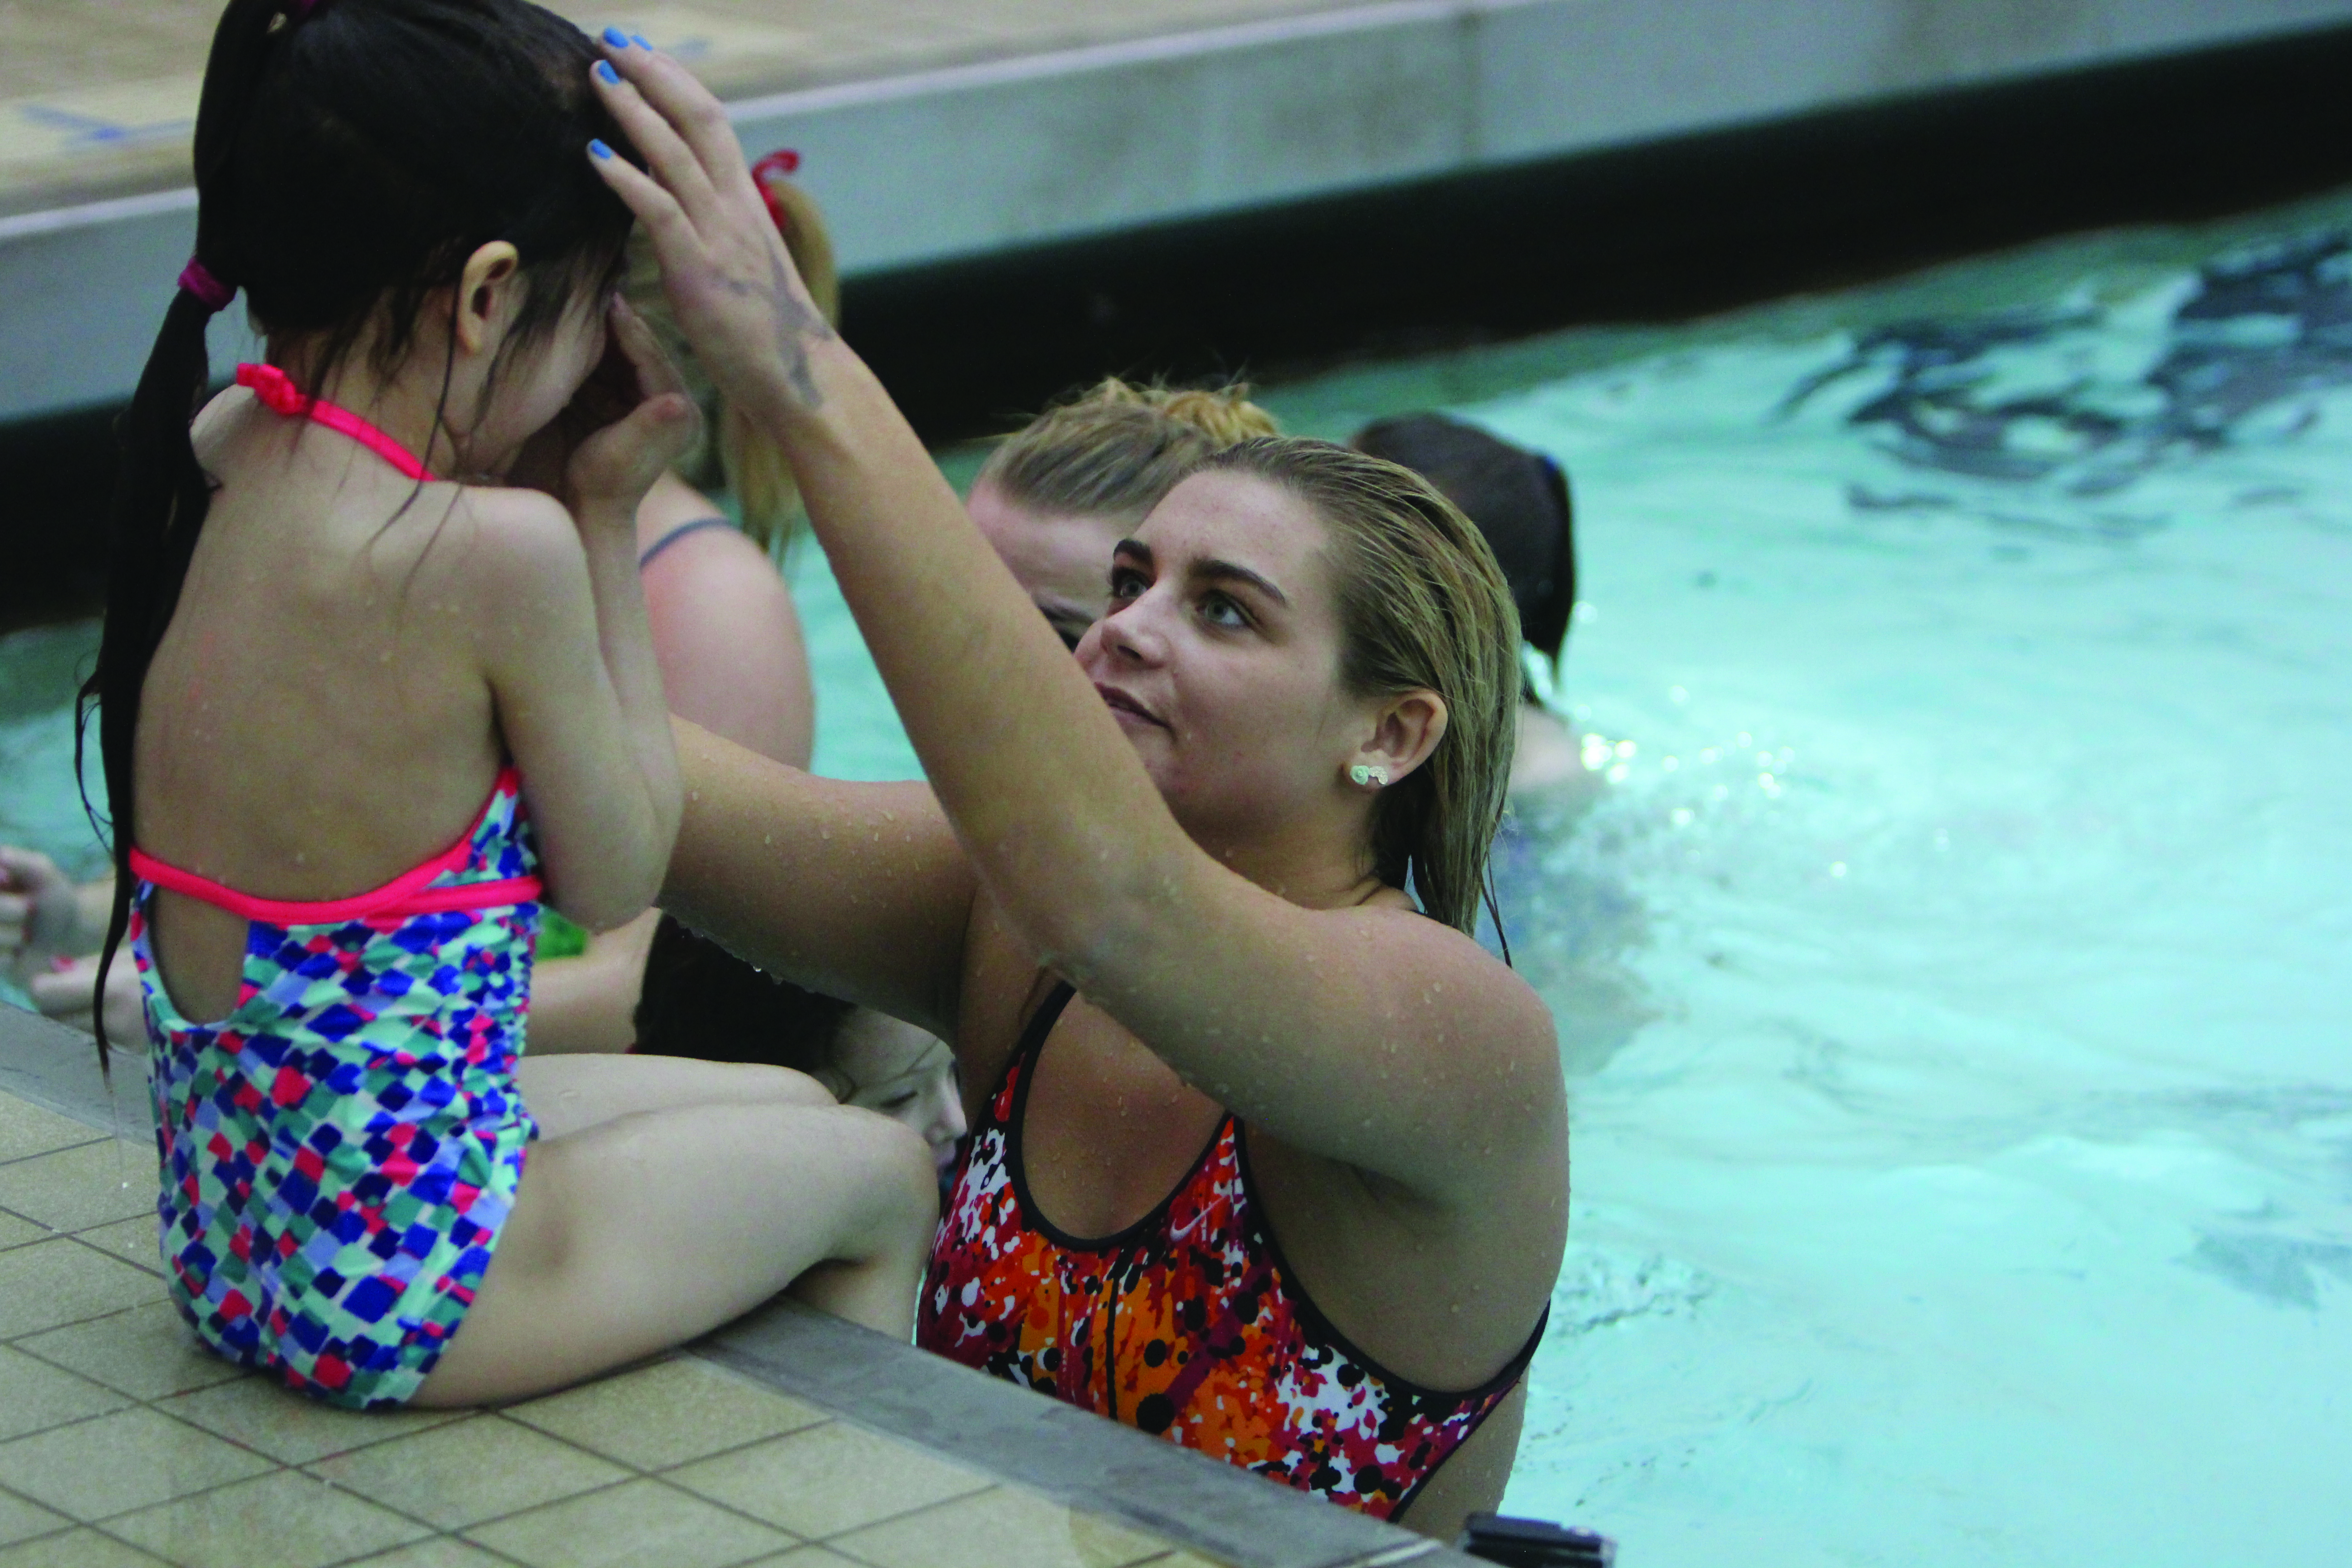 Members of the YSU swimming and diving team help children learn aquatics and swimming techniques as a fundraiser to offset traveling and equipment expenses.